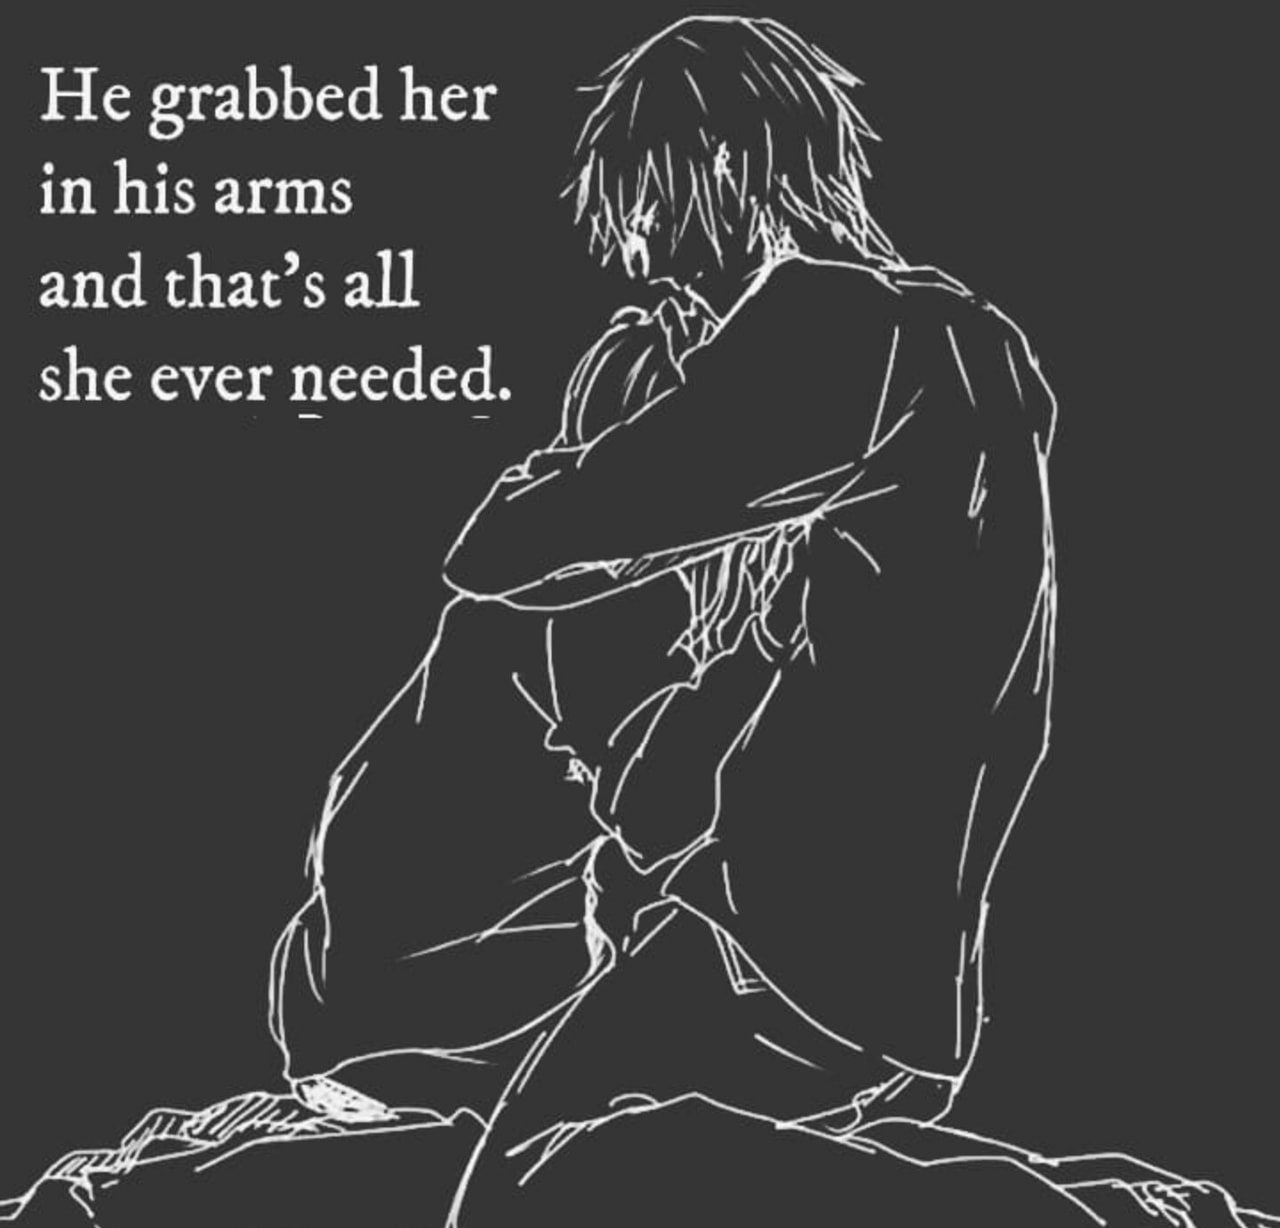 sad, her, grabbed and couple